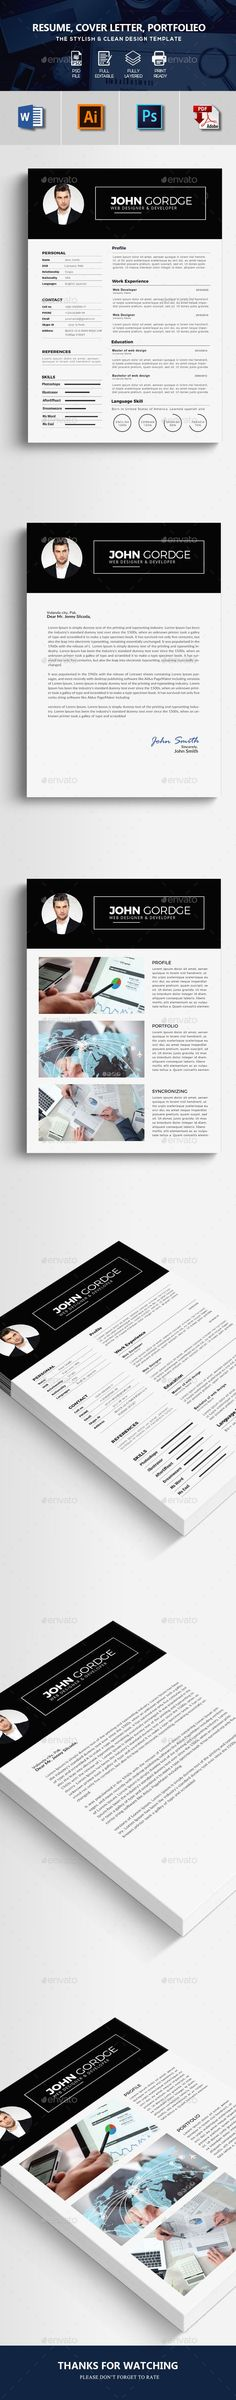 Best Resume Format For Software Engineers Resume Pinterest